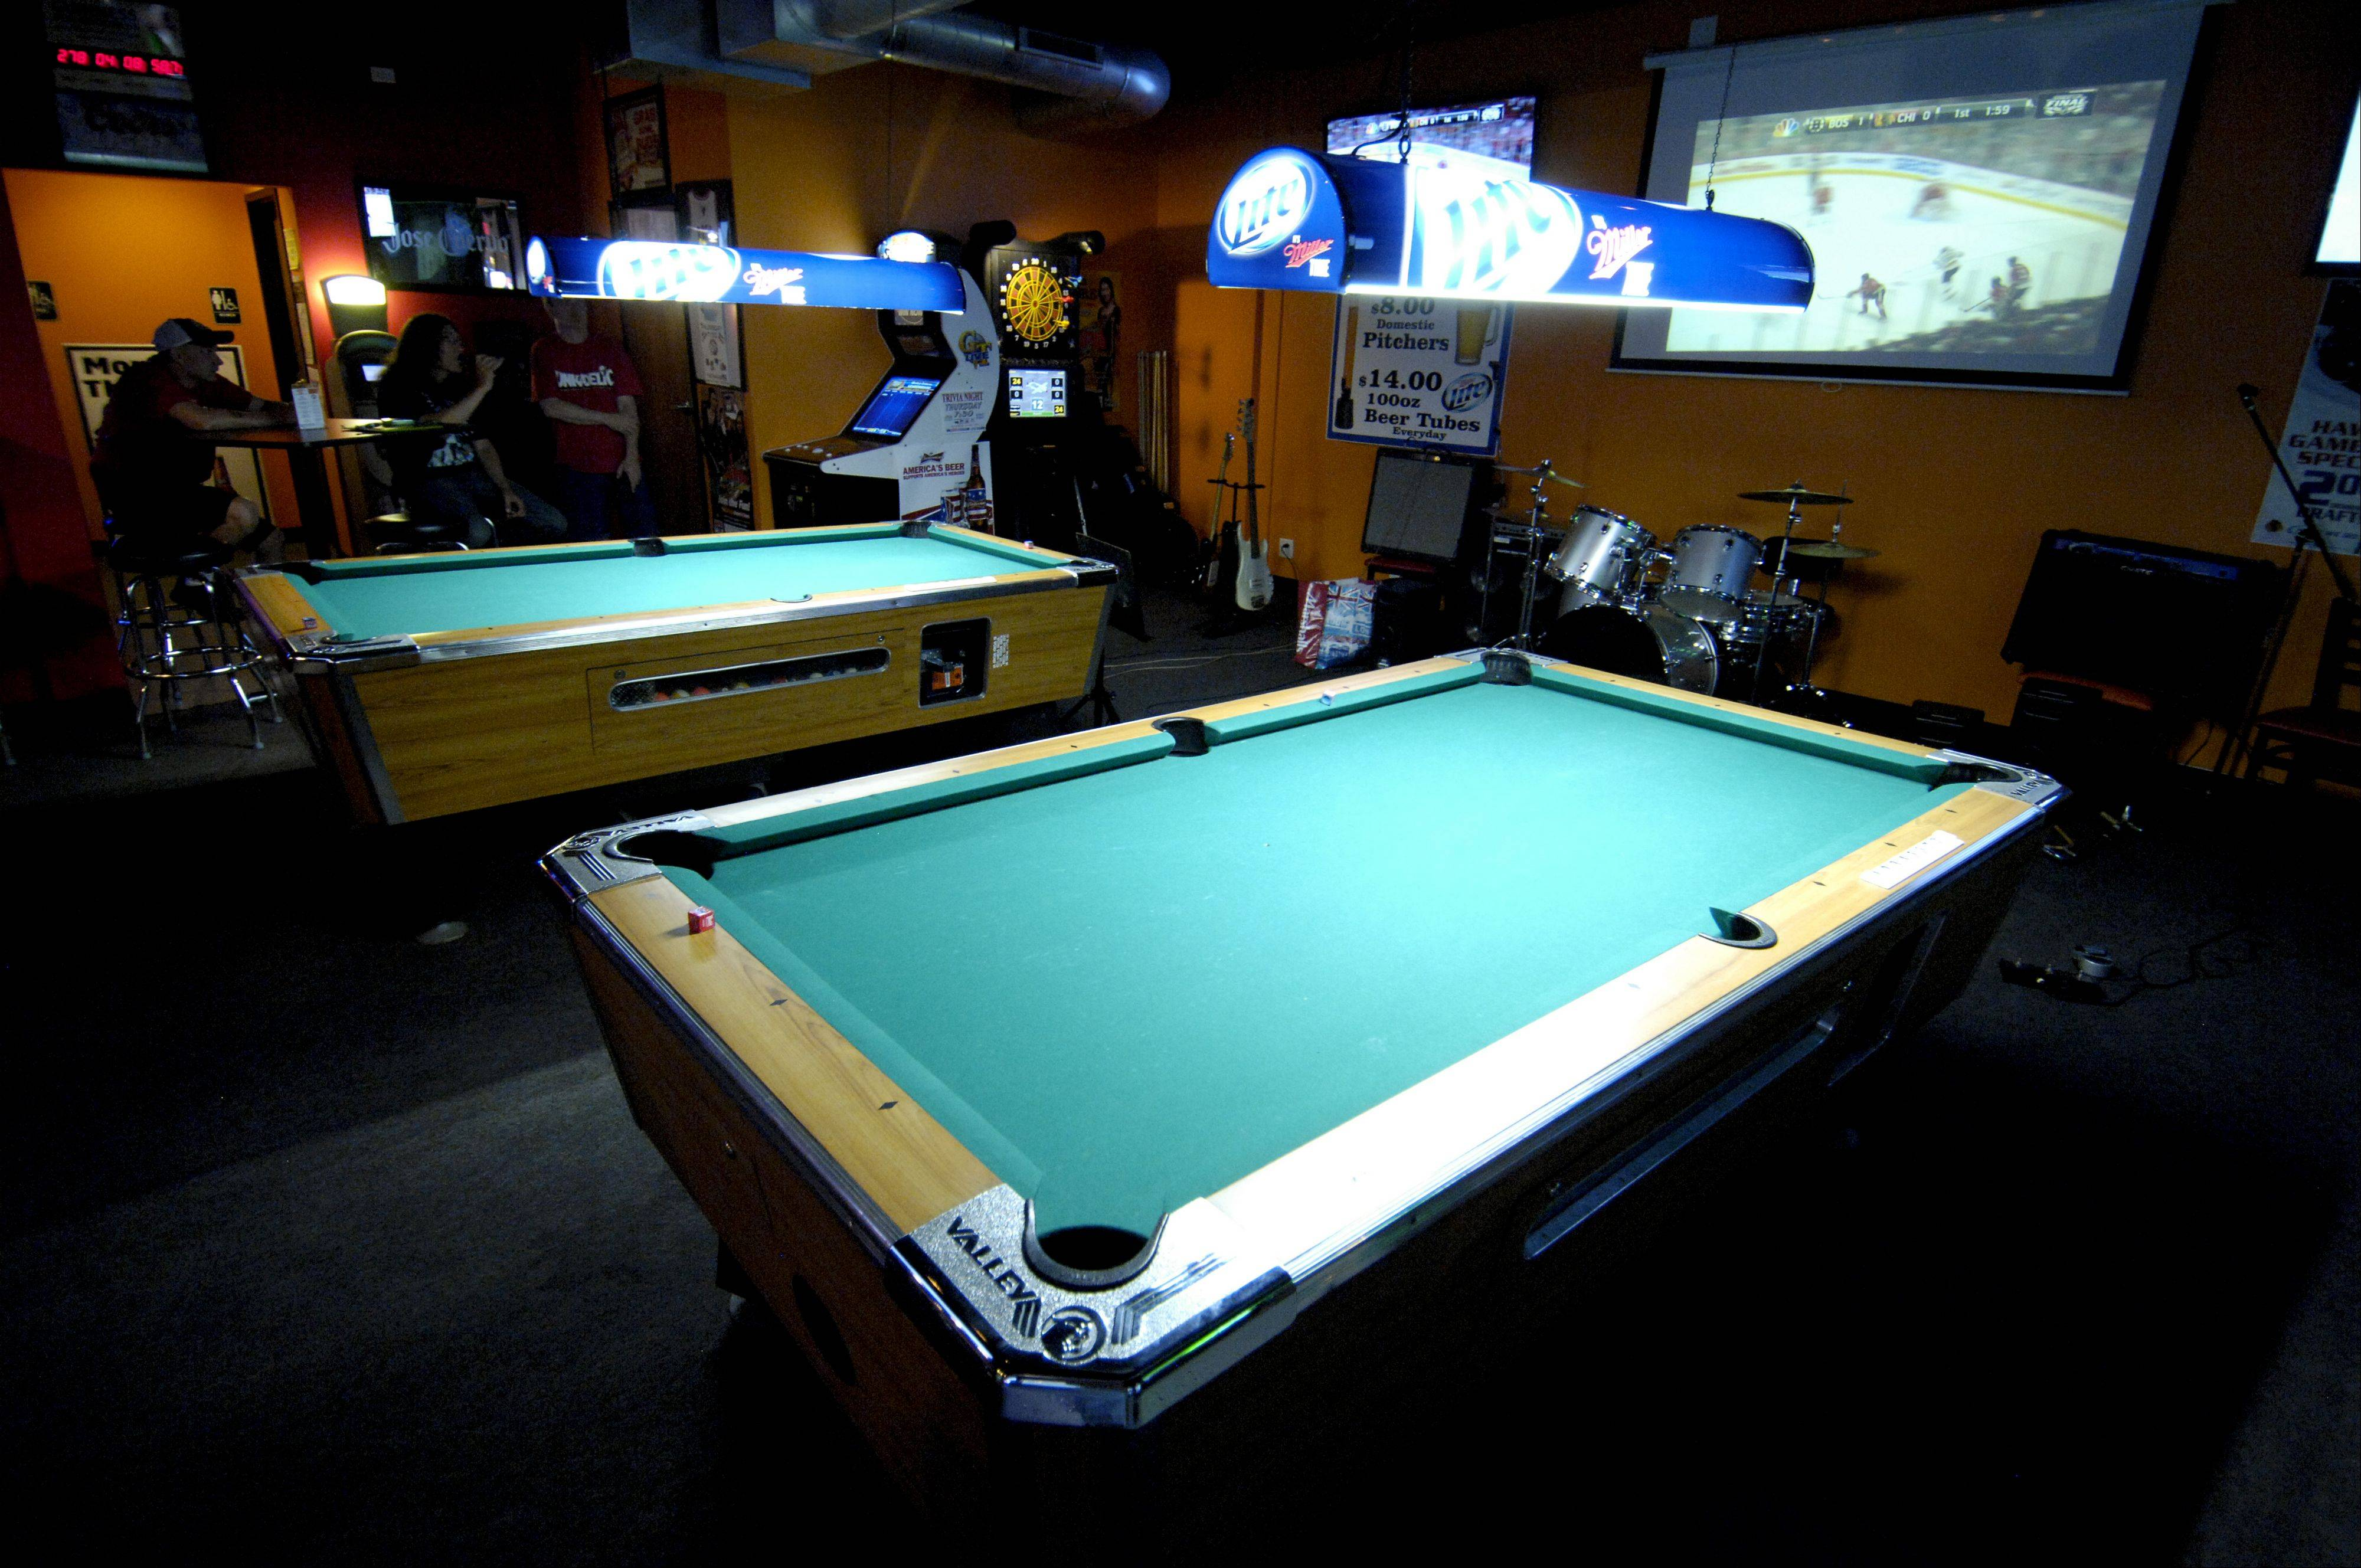 Pool tables are among the draws at Overtime Bar & Grill in Lombard.